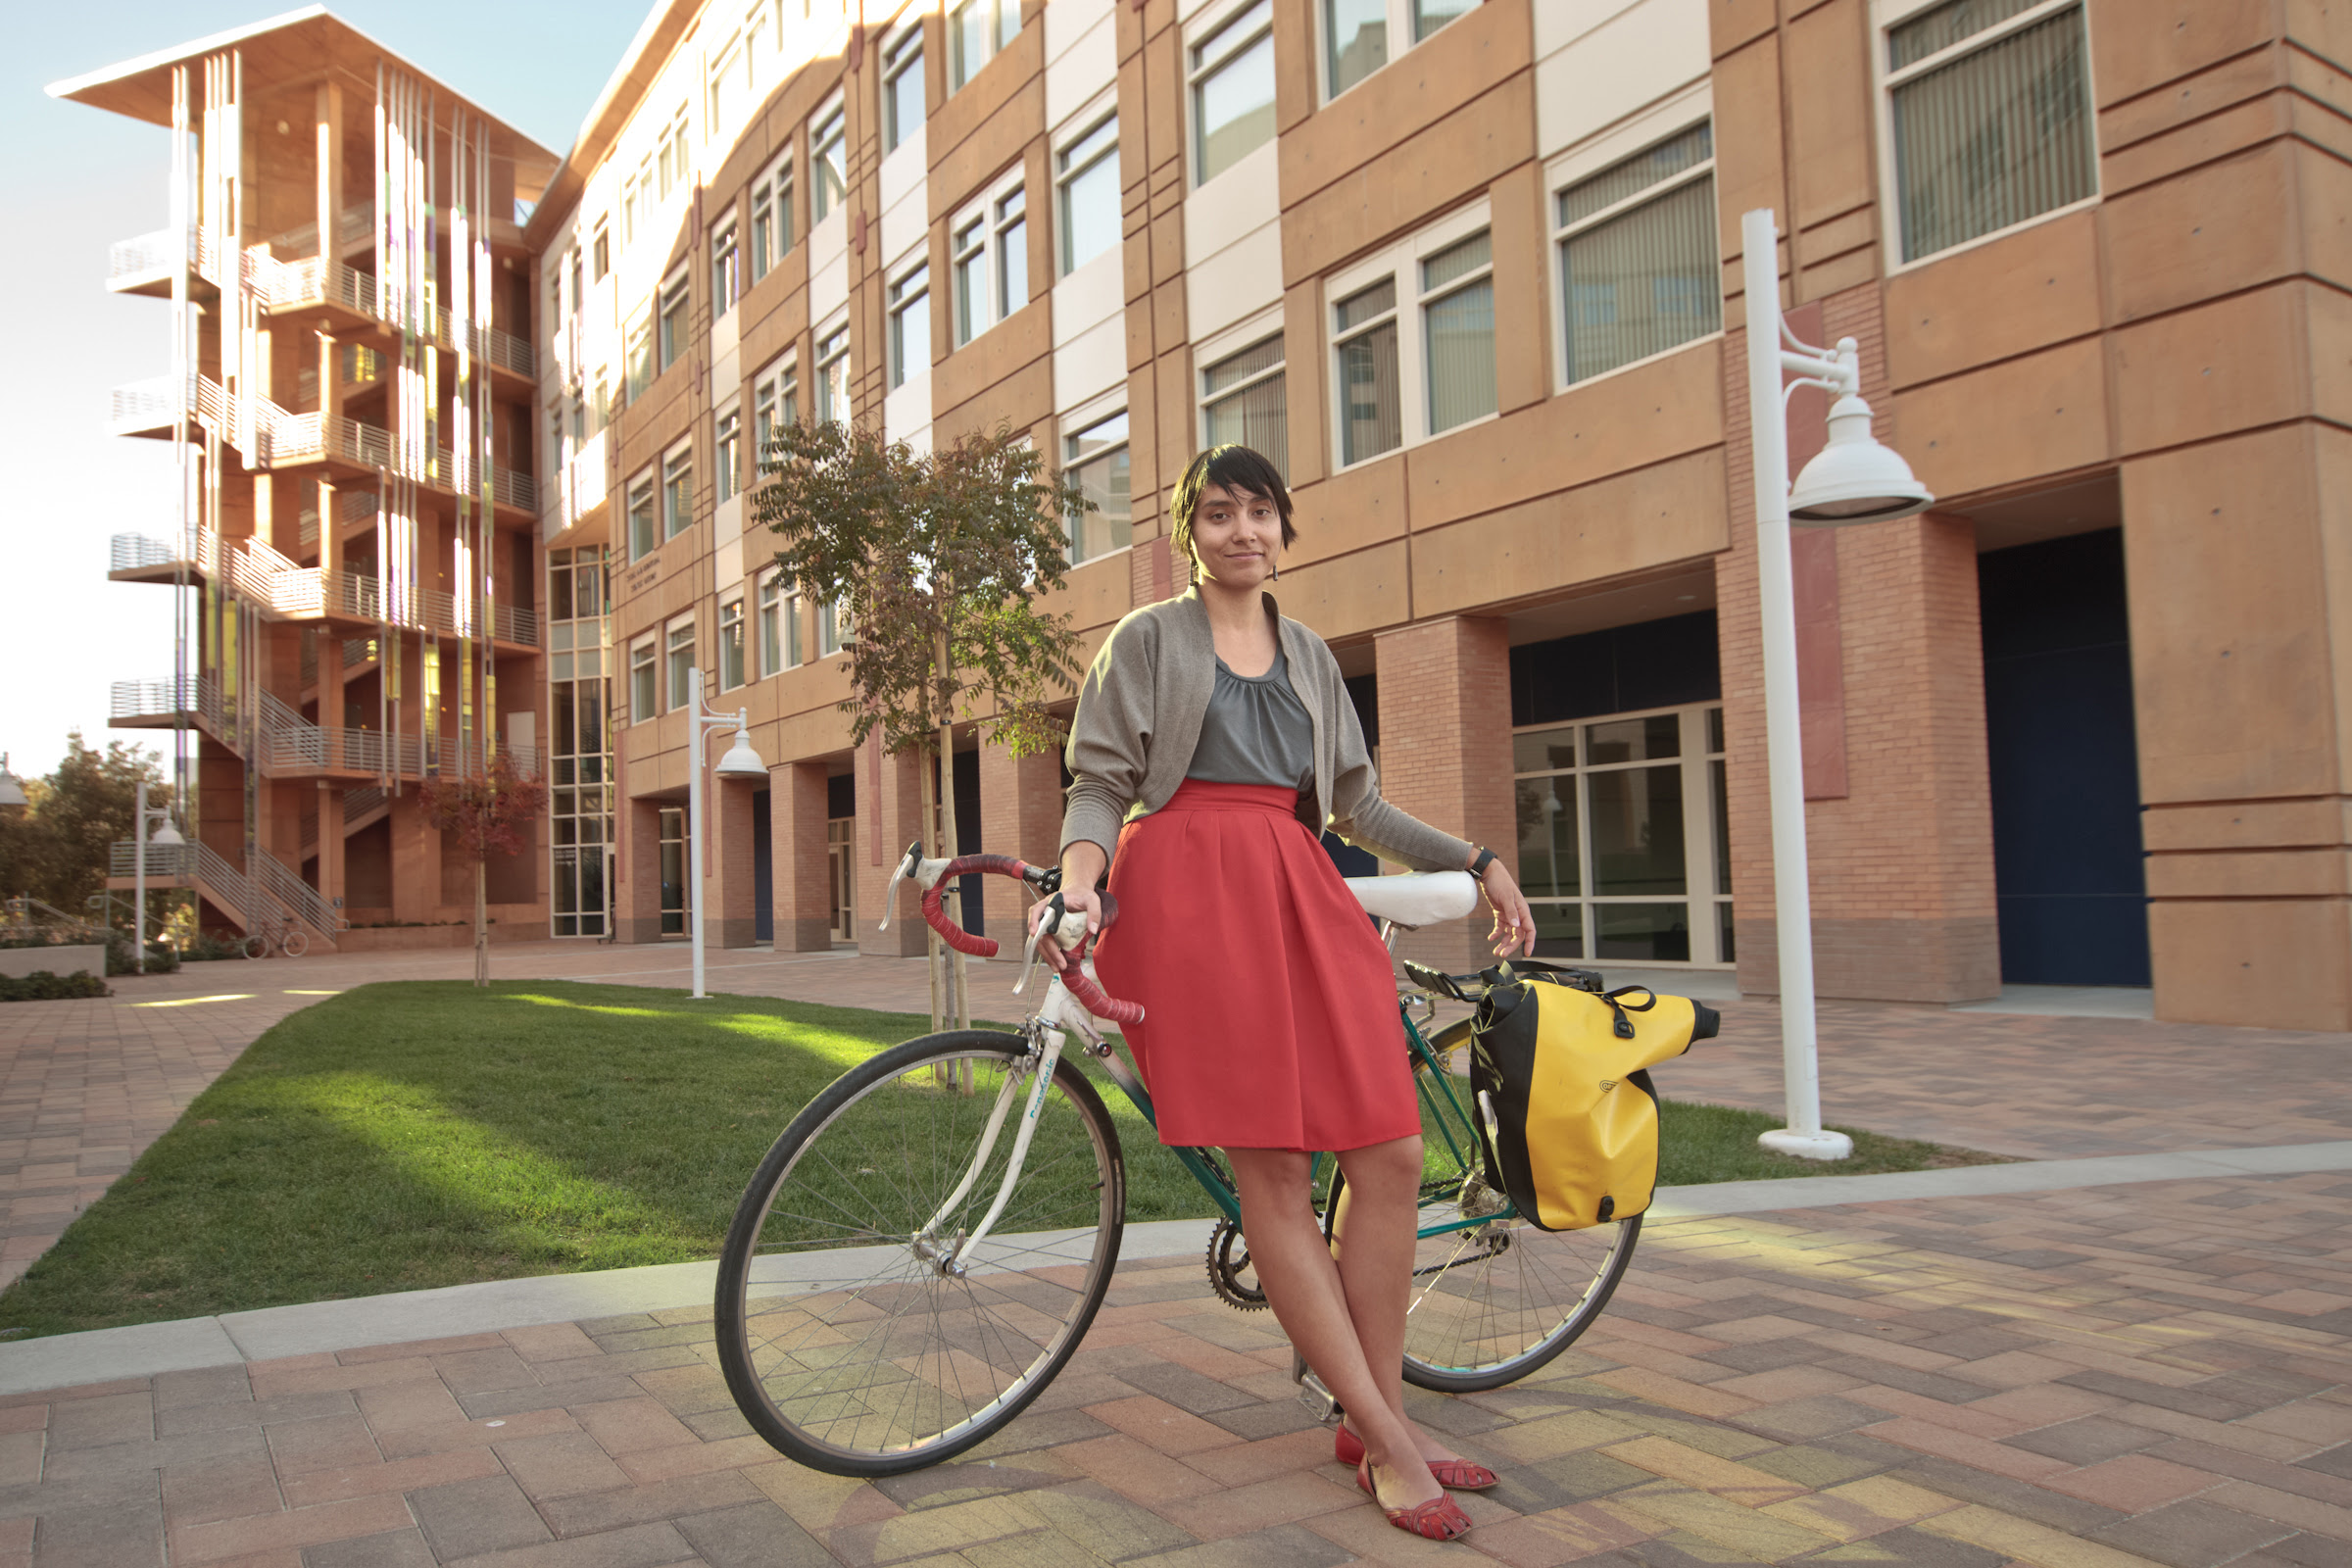 Caption:  Adonia Lugo, a UC Irvine doctoral candidate in anthropology, has dedicated much of her academic and personal life to alternative transportation; everyday, she uses a combination of buses, trains, and bicycling to commute to Irvine from Los Angel